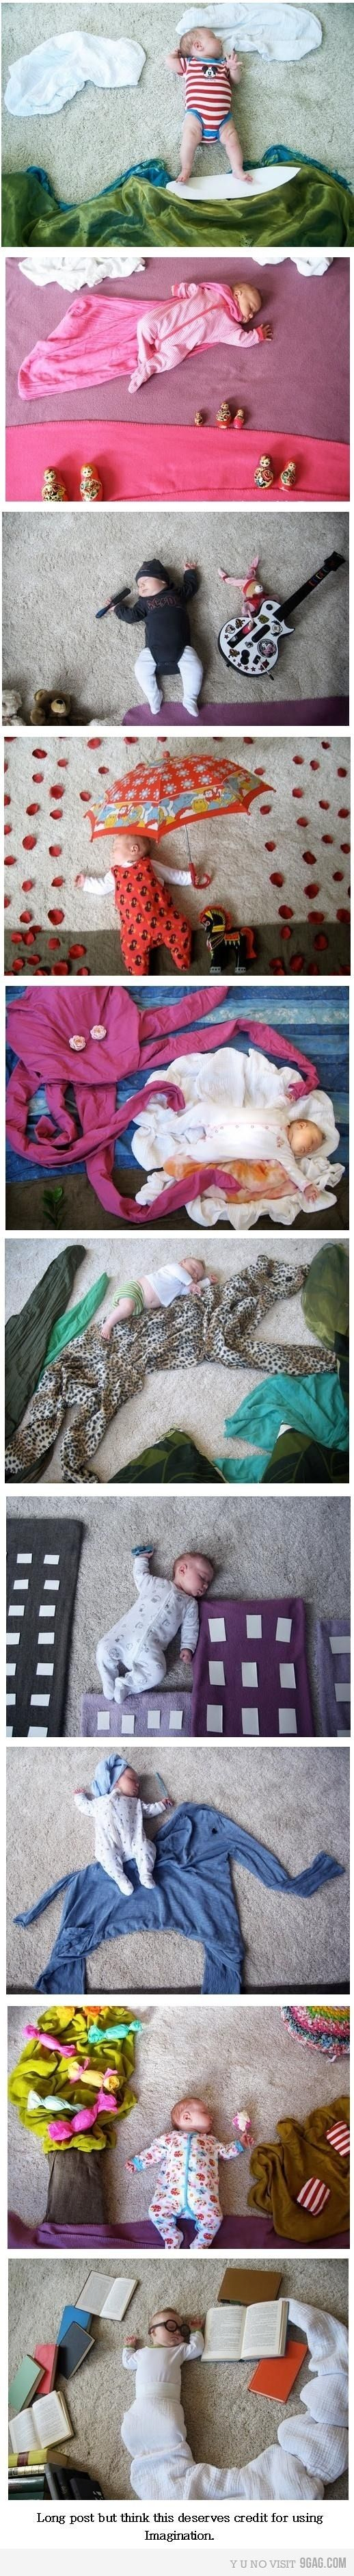 Too cute baby pictures. Good cute idea